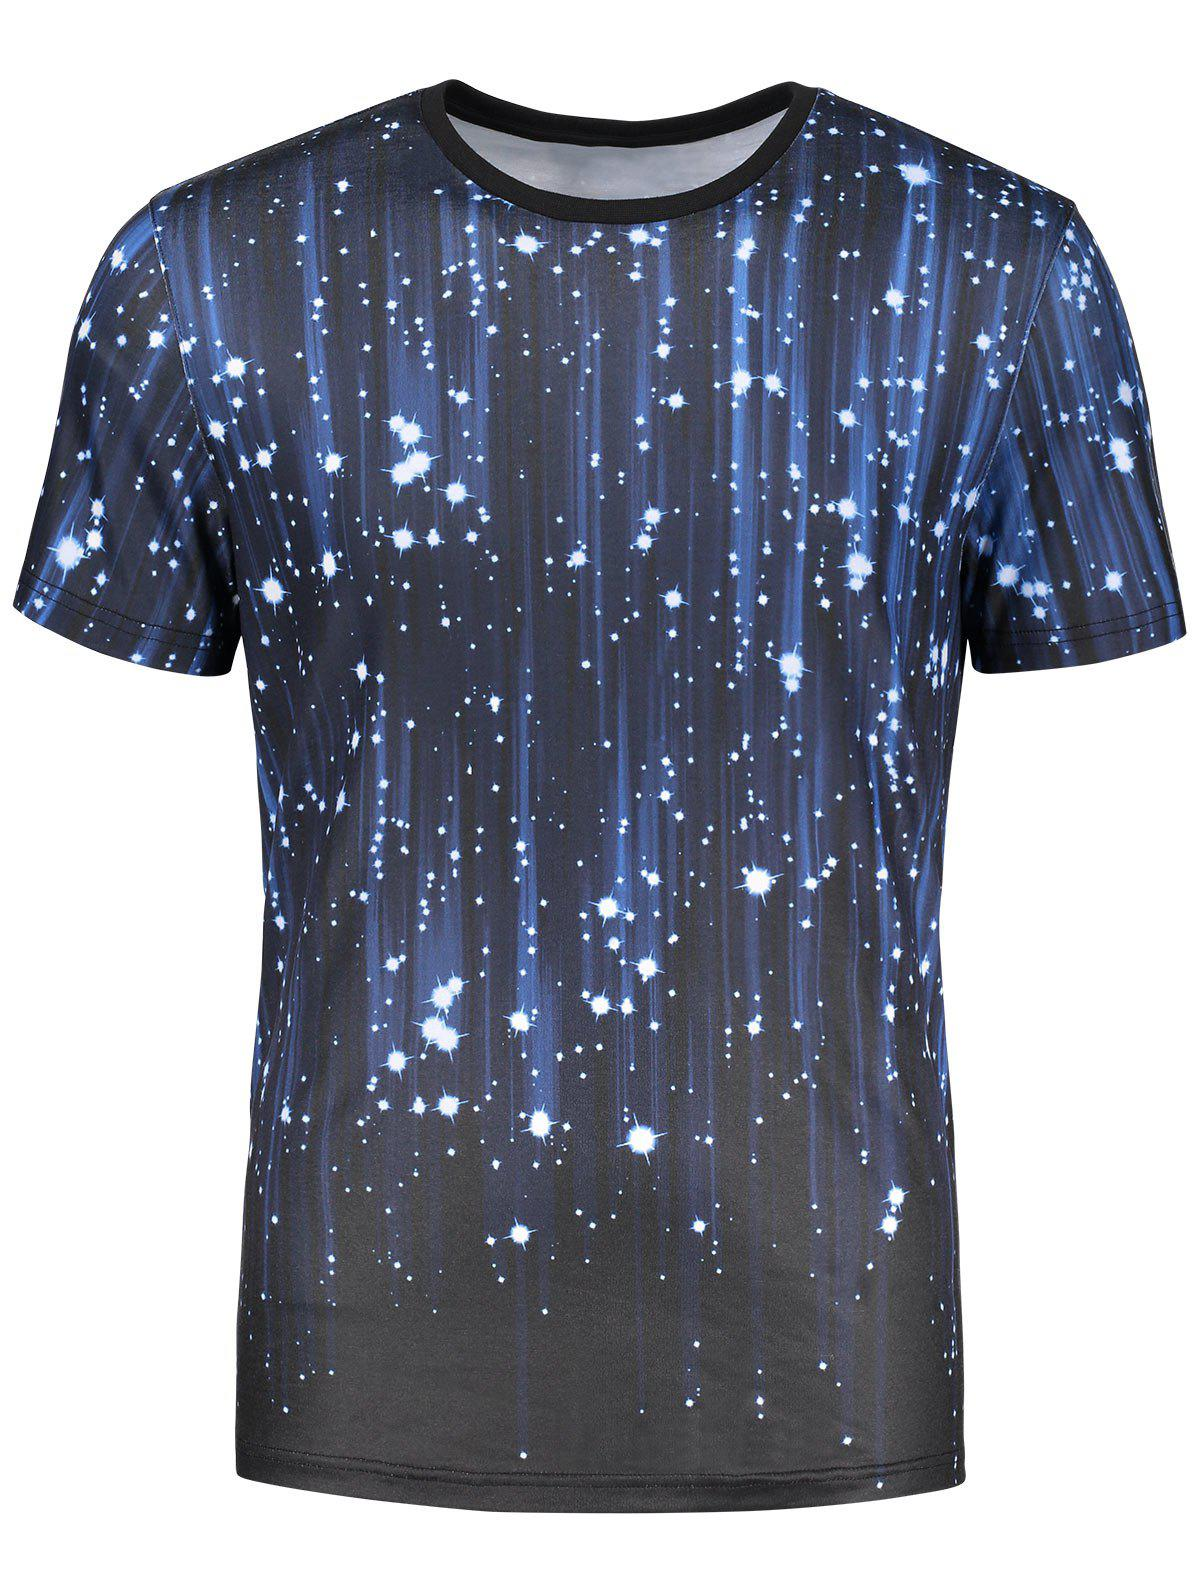 3D Galaxy Print Short Sleeve T-shirt - COLORMIX 2XL